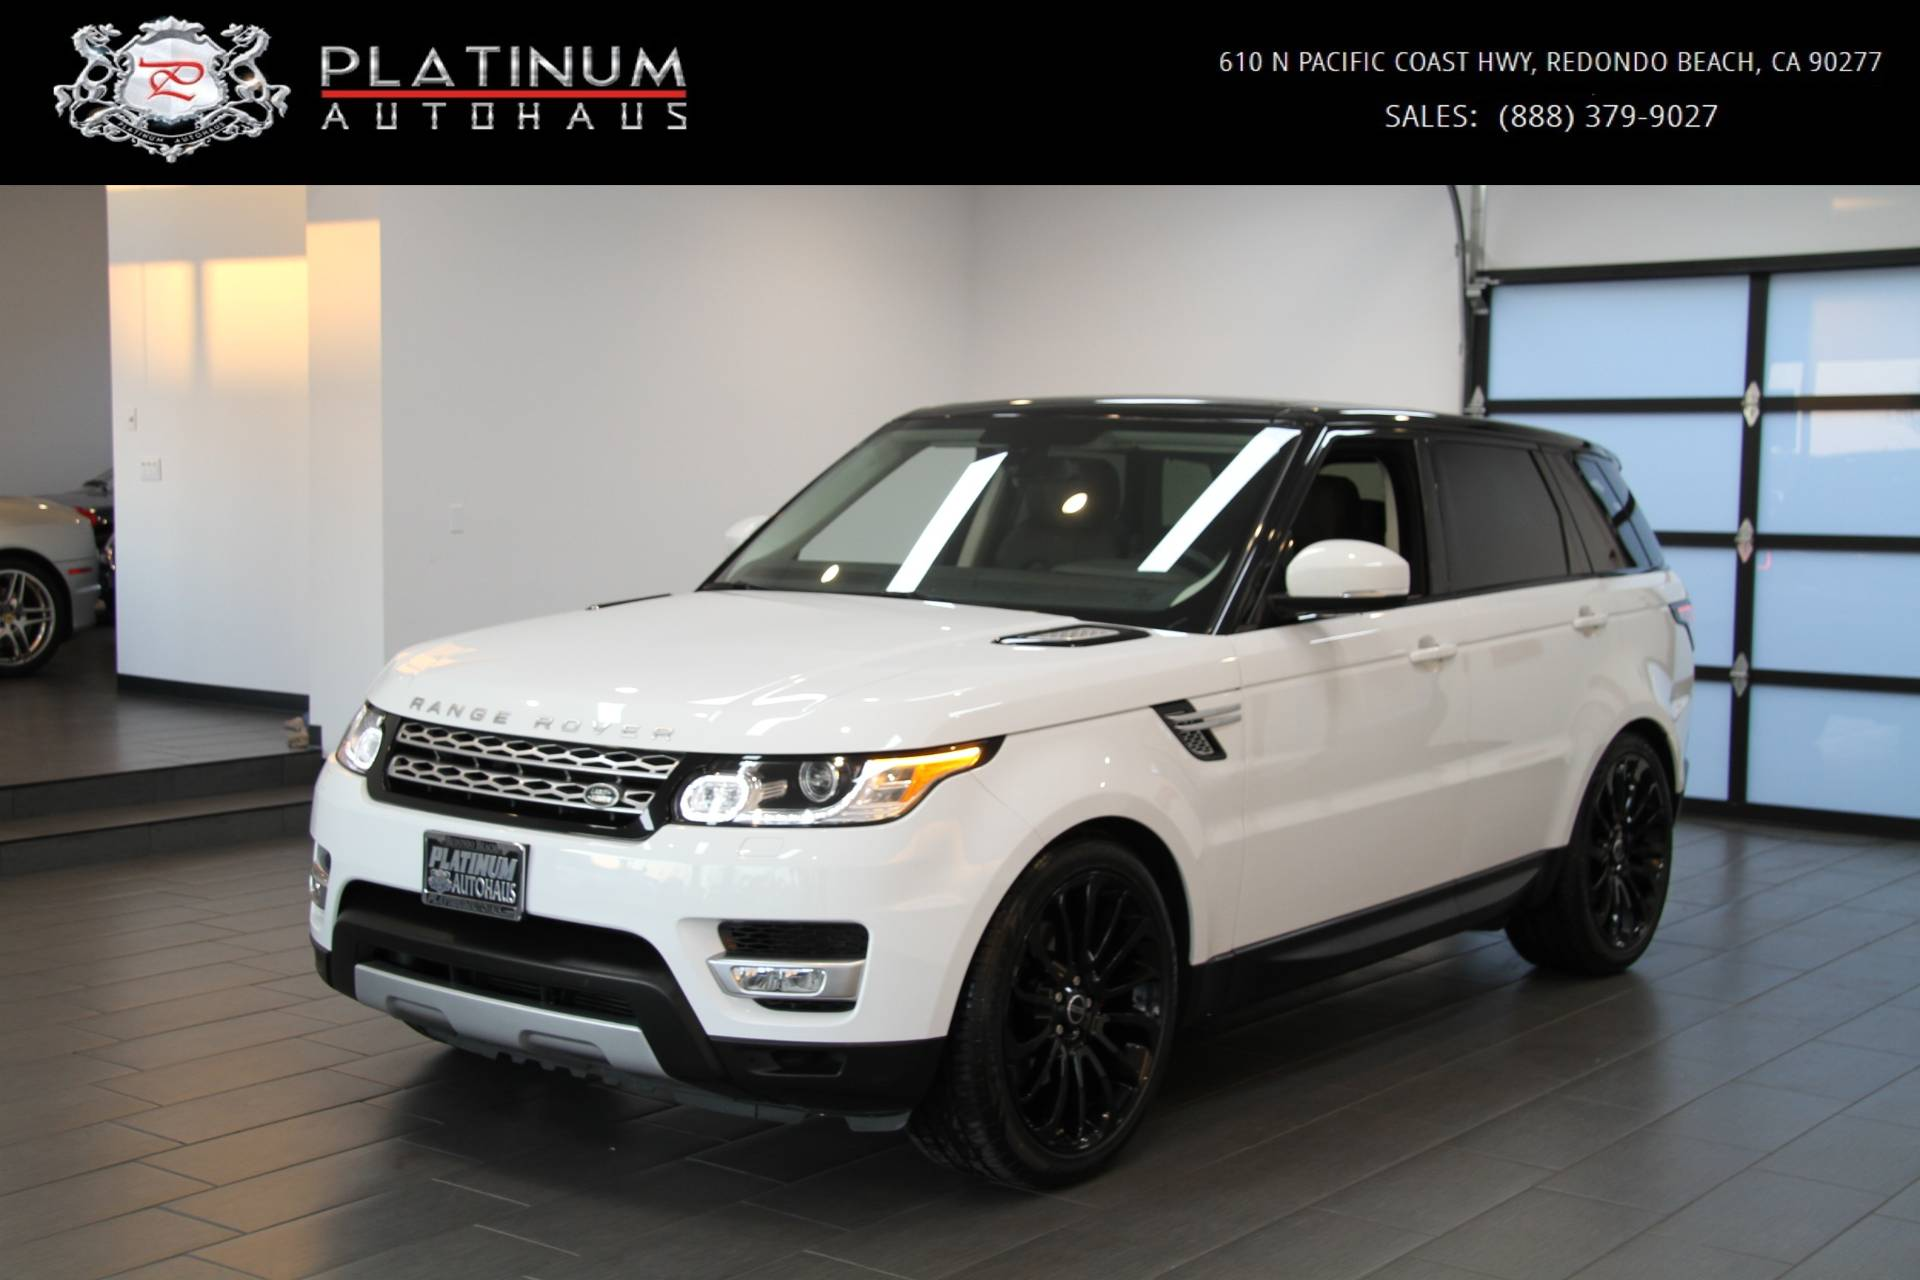 2015 Land Rover Range Rover Sport Hse Stock 6103 For